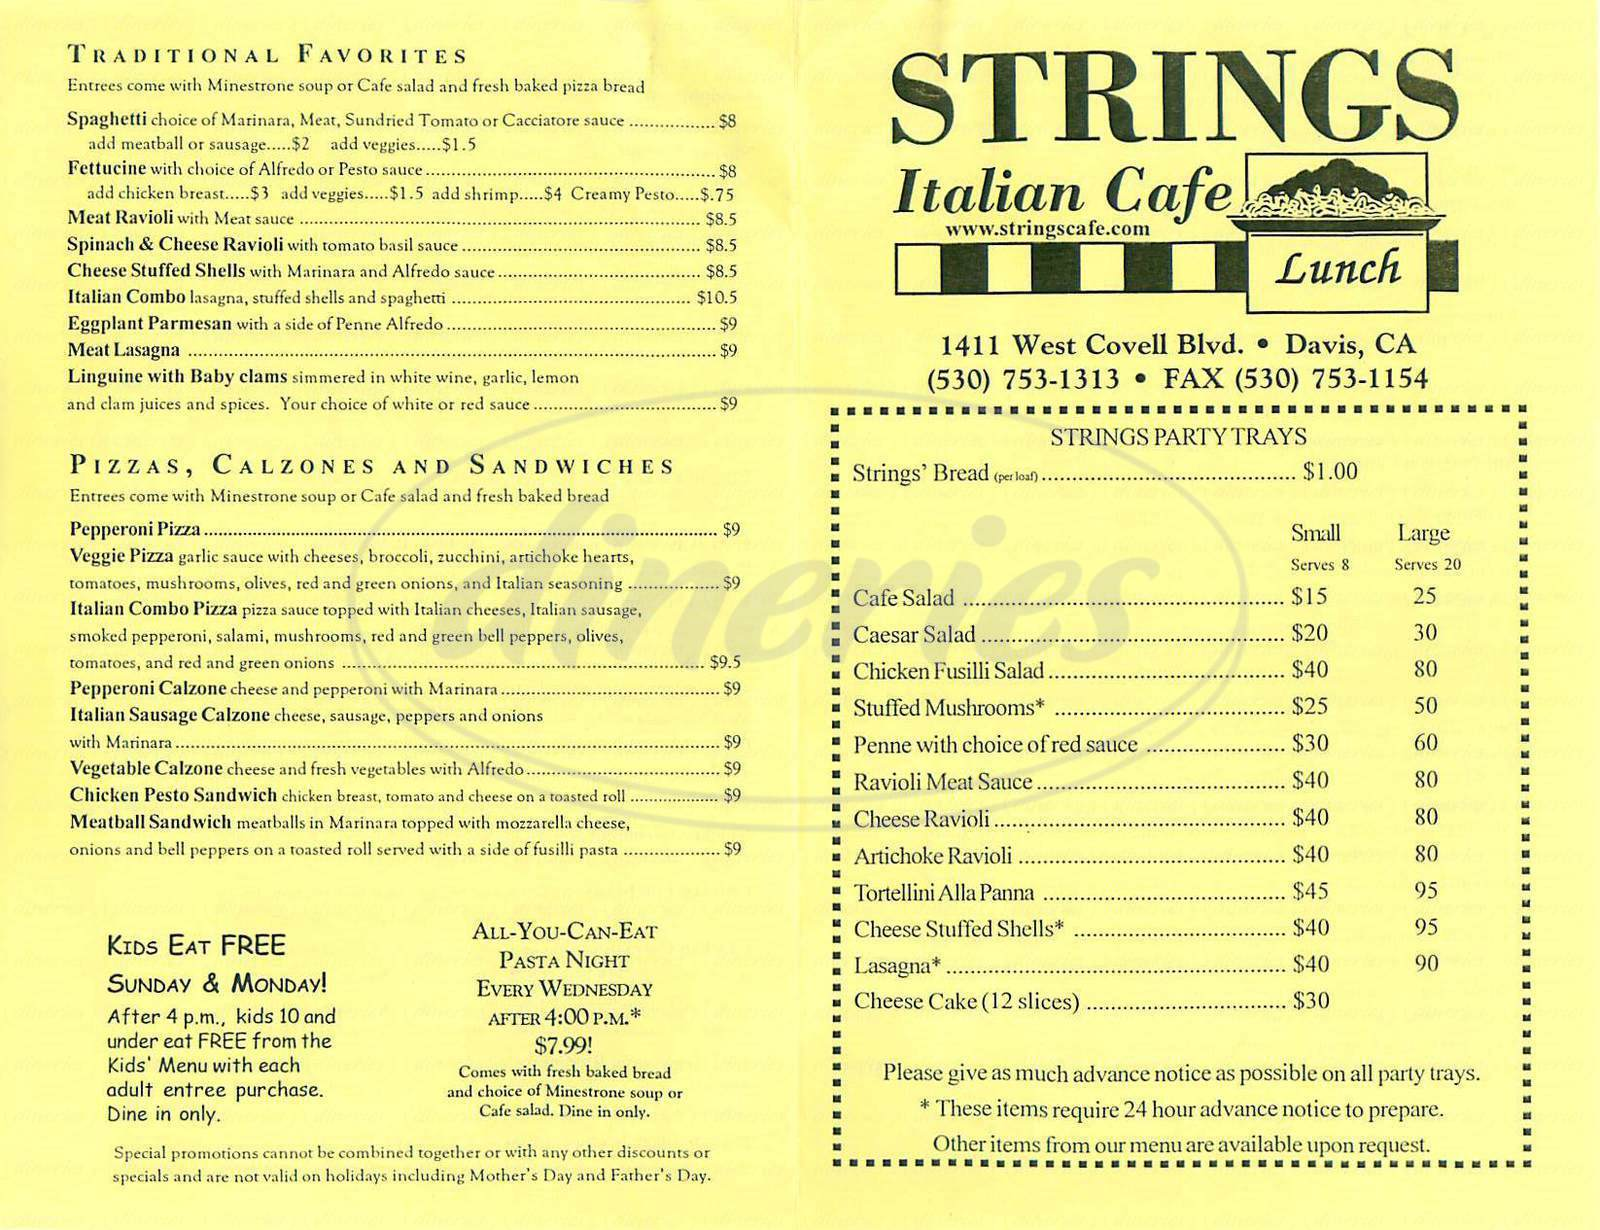 menu for Strings Italian Café